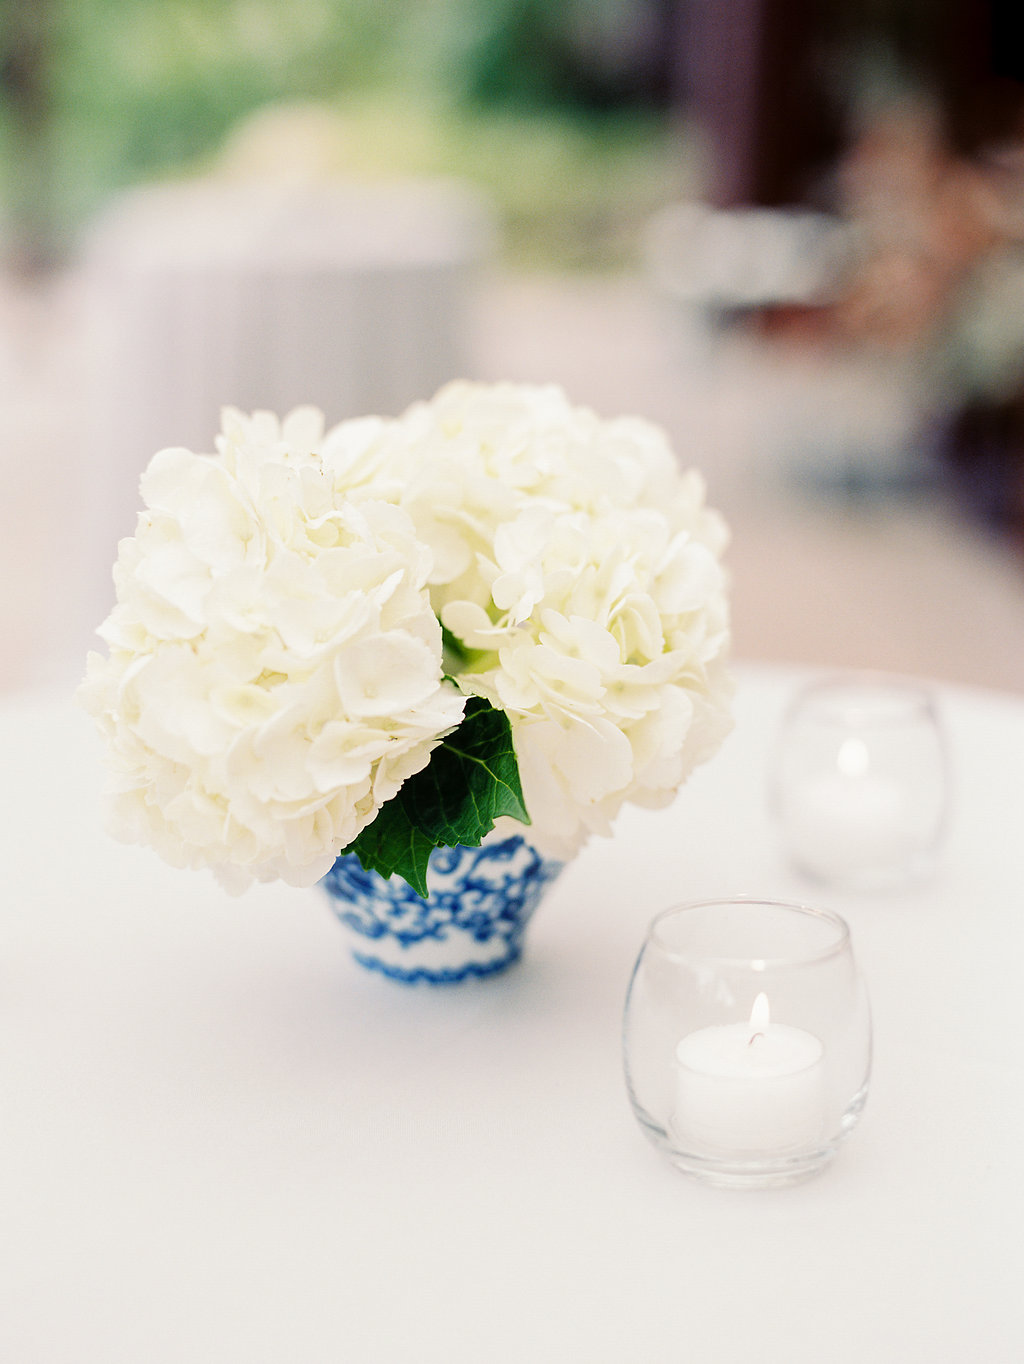 Low Ginger Jar Floral Arrangements with Hydrangeas